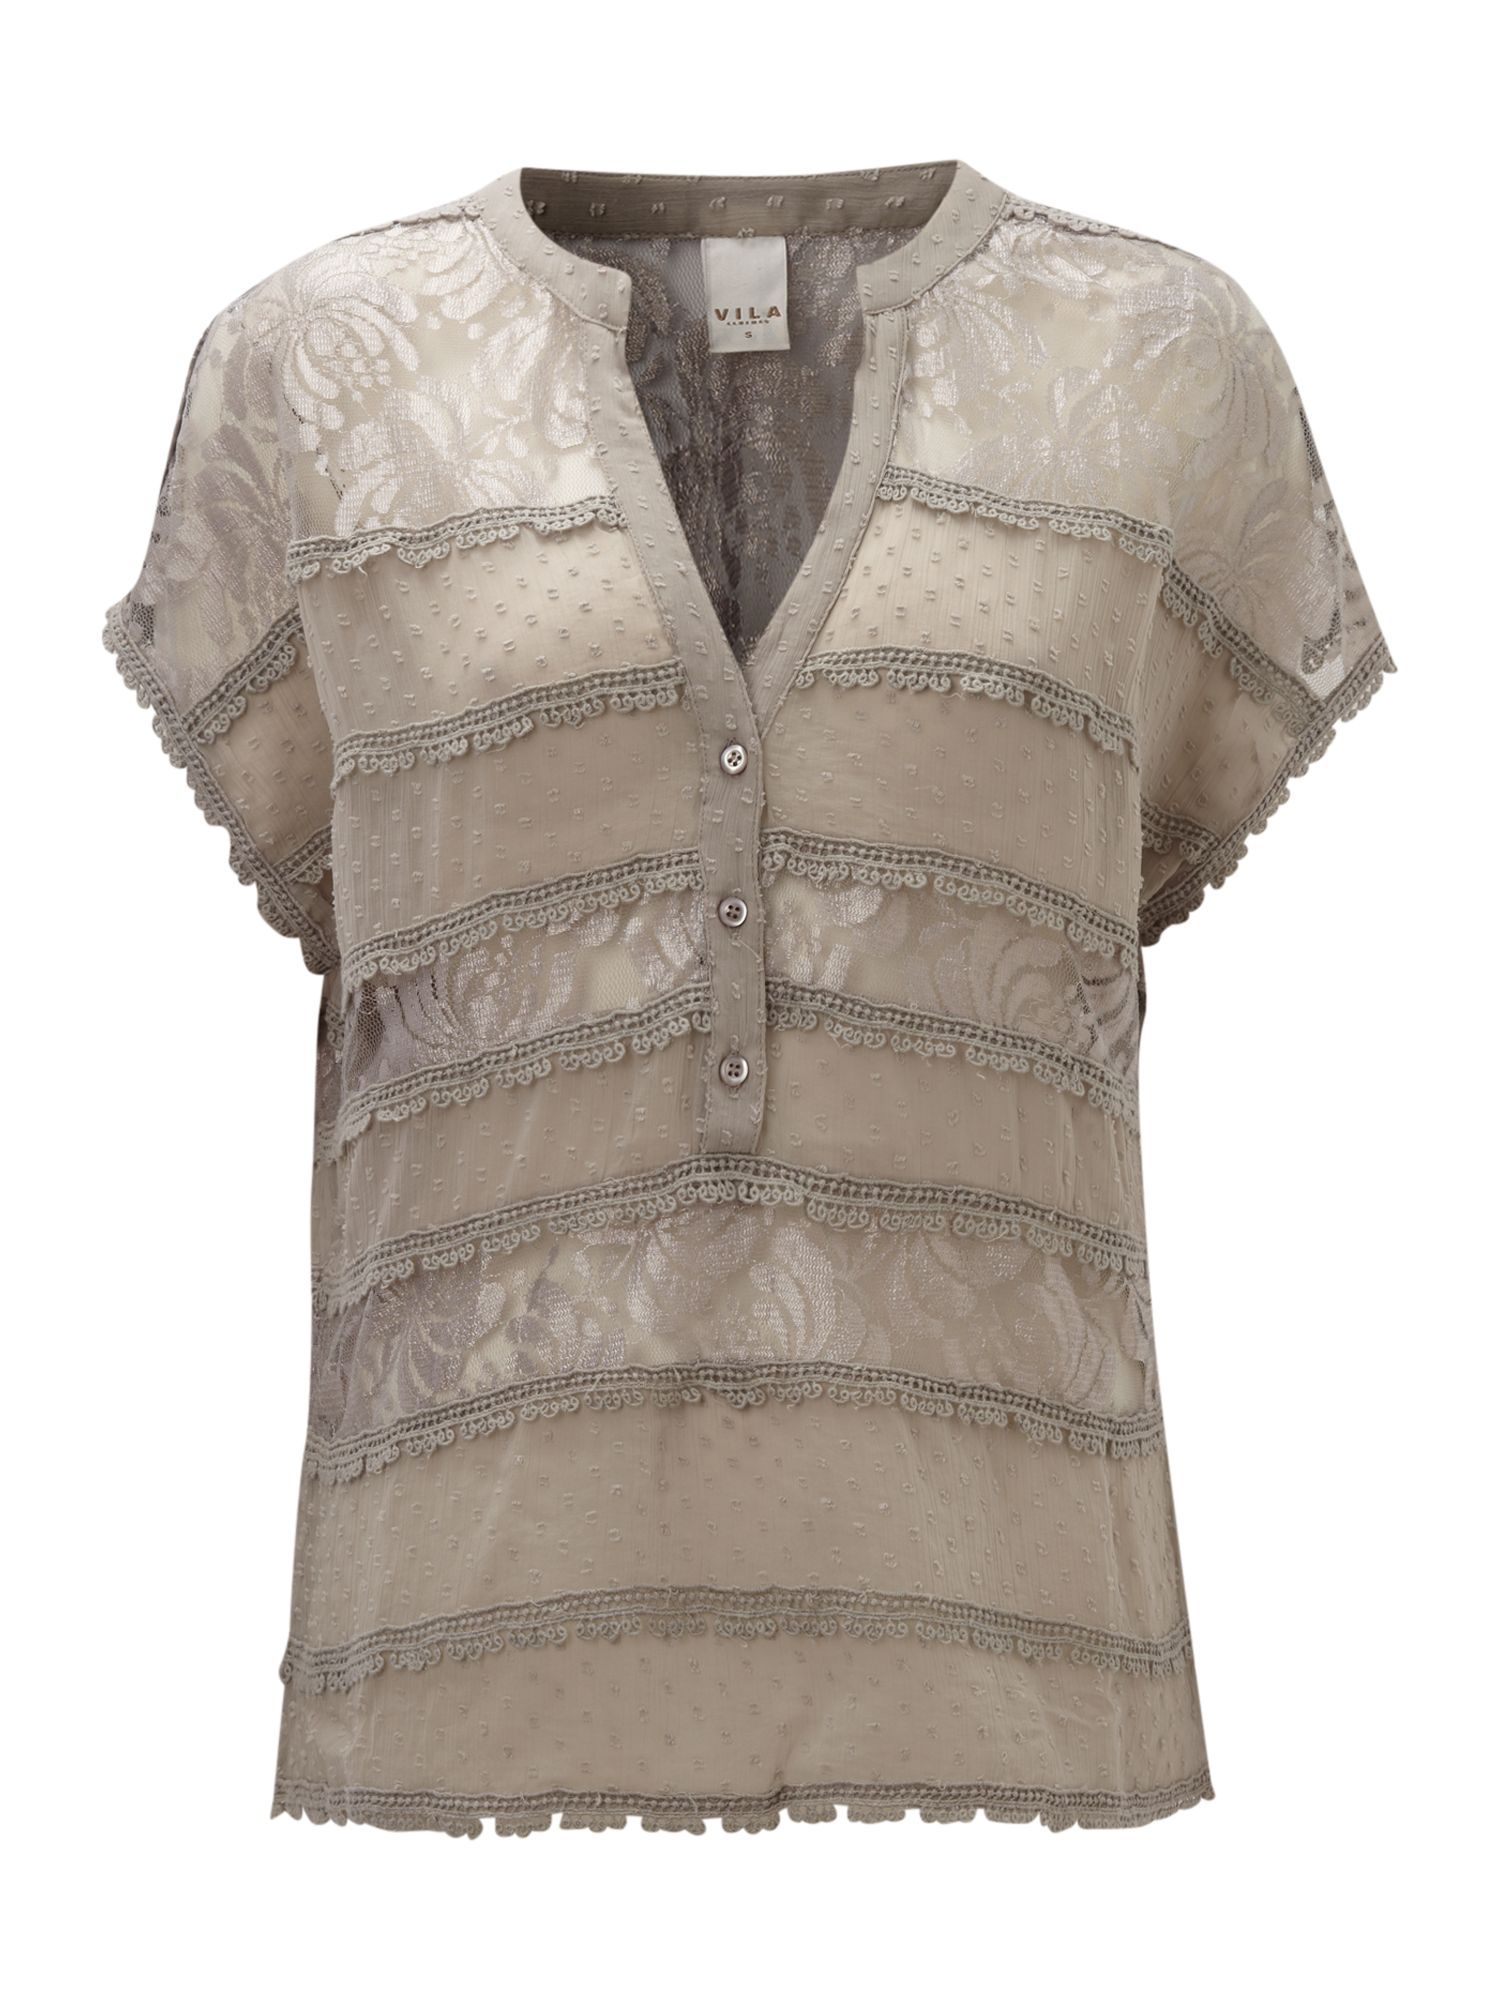 Women's Short Sleeve 3 Button Sheer Top, Paloma - pattern: plain, lightly patterned, lace, patterned/print; style: blouse; shoulder detail: contrast pattern/fabric at shoulder; bust detail: buttons at bust (in middle at breastbone)/zip detail at bust; predominant colour: taupe; occasions: evening, work; length: standard; neckline: mandarin with v-neck; fibres: polyester/polyamide - 100%; material texture: lace; fit: straight cut; trends: prints; sleeve length: short sleeve; sleeve style: standard; texture group: lace; pattern type: fabric; pattern size: small & light